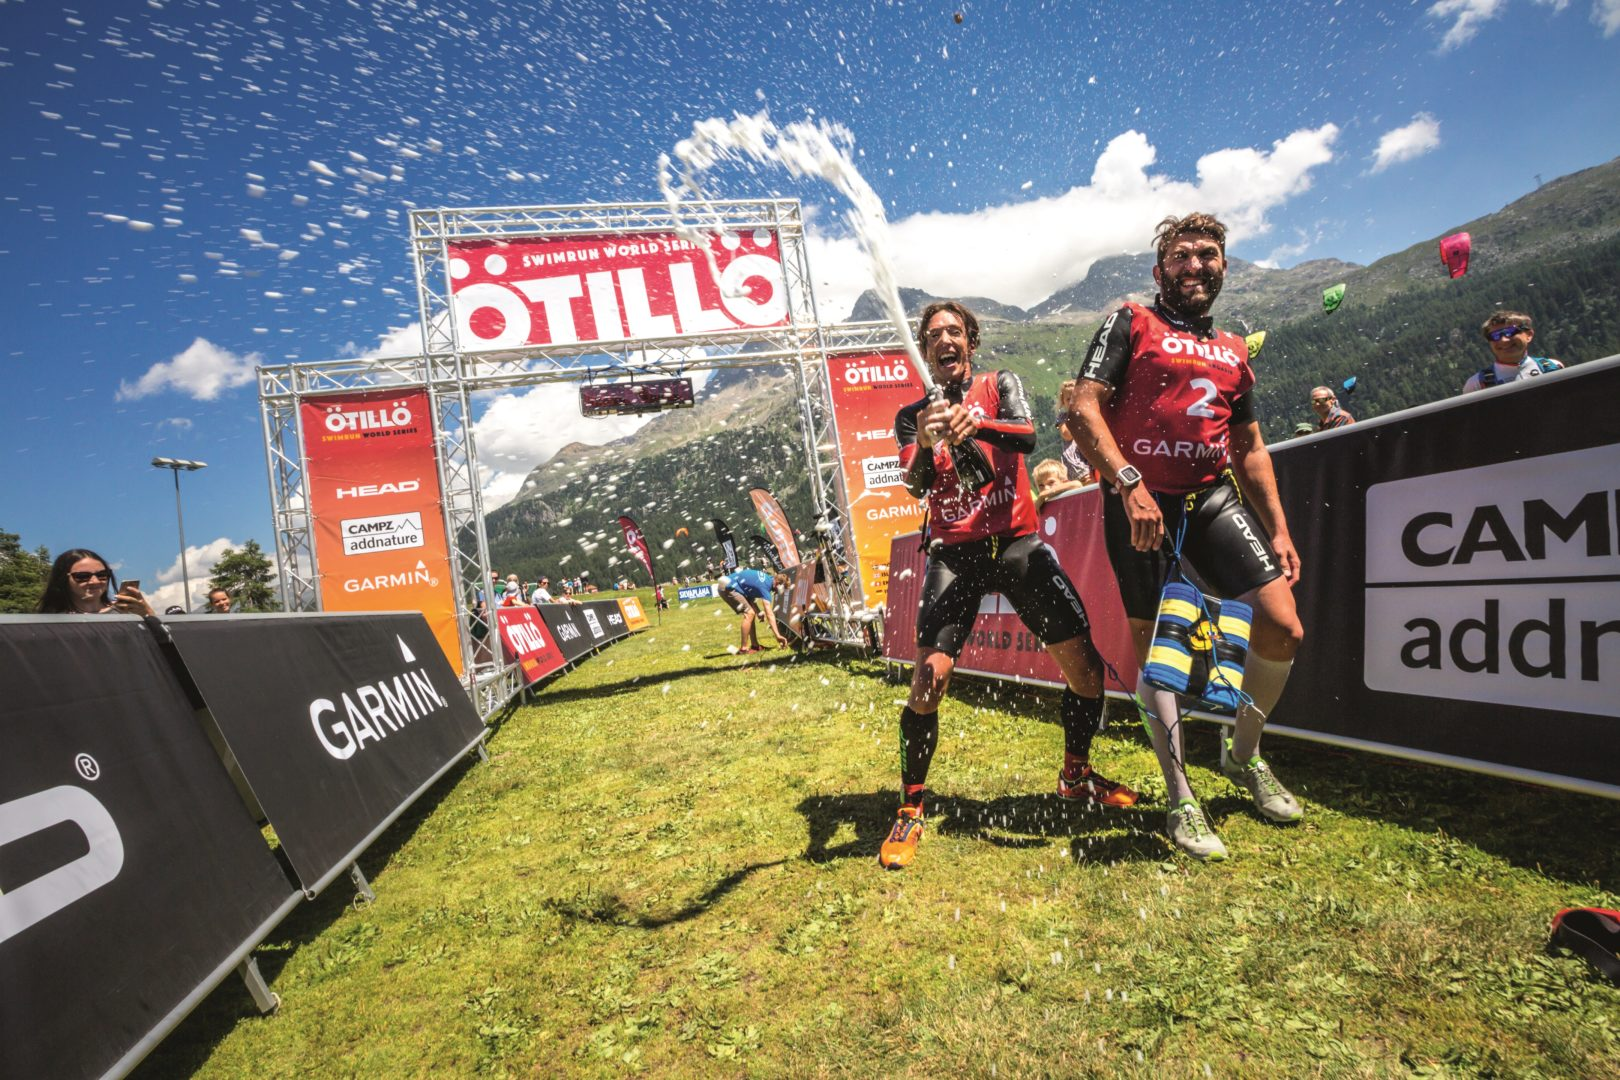 Tough Race in the Swiss Alps